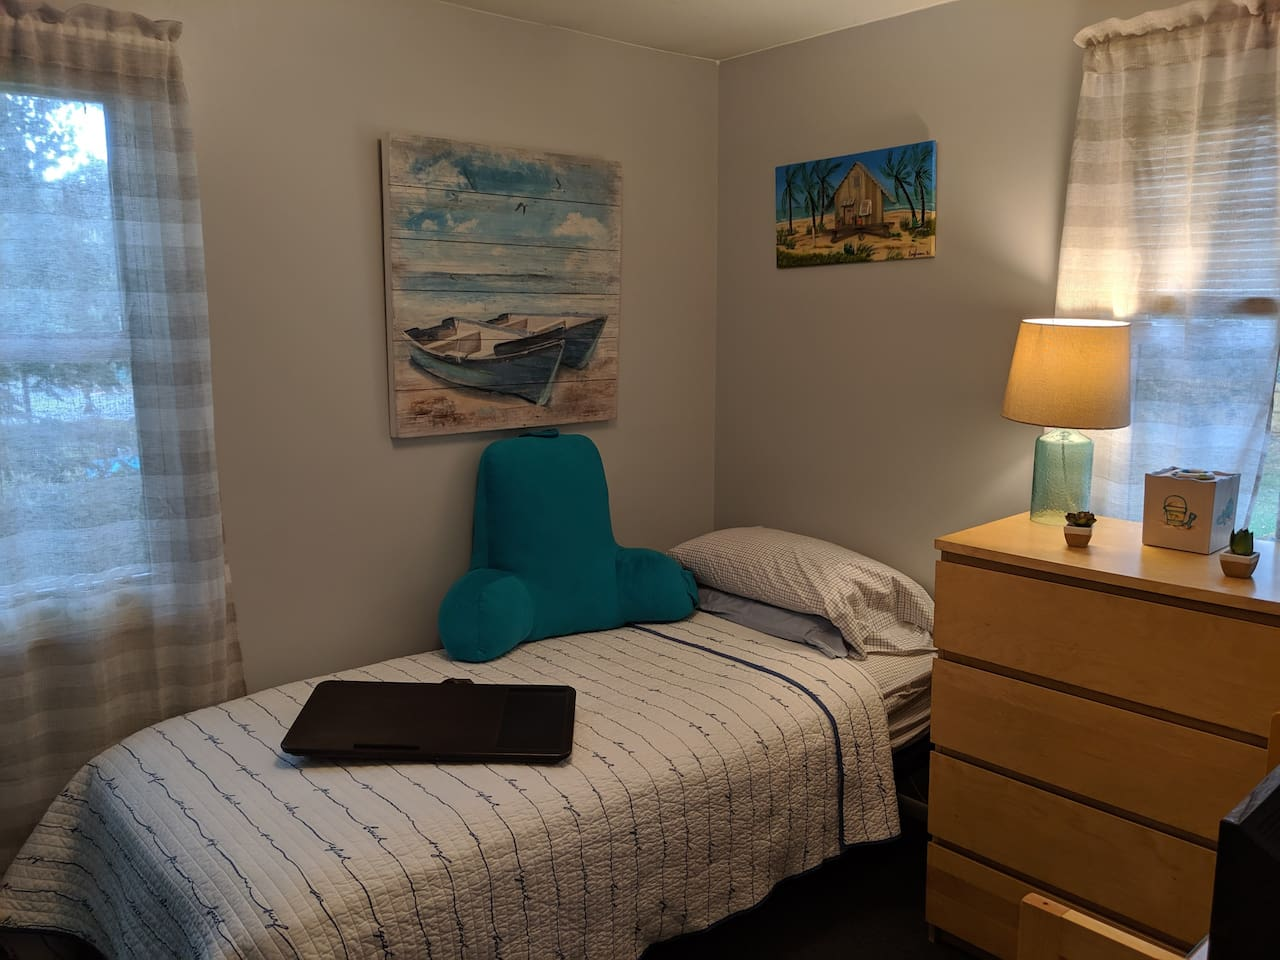 This room had recently been upgraded with a new electric bed. Put your feet up, and relax!